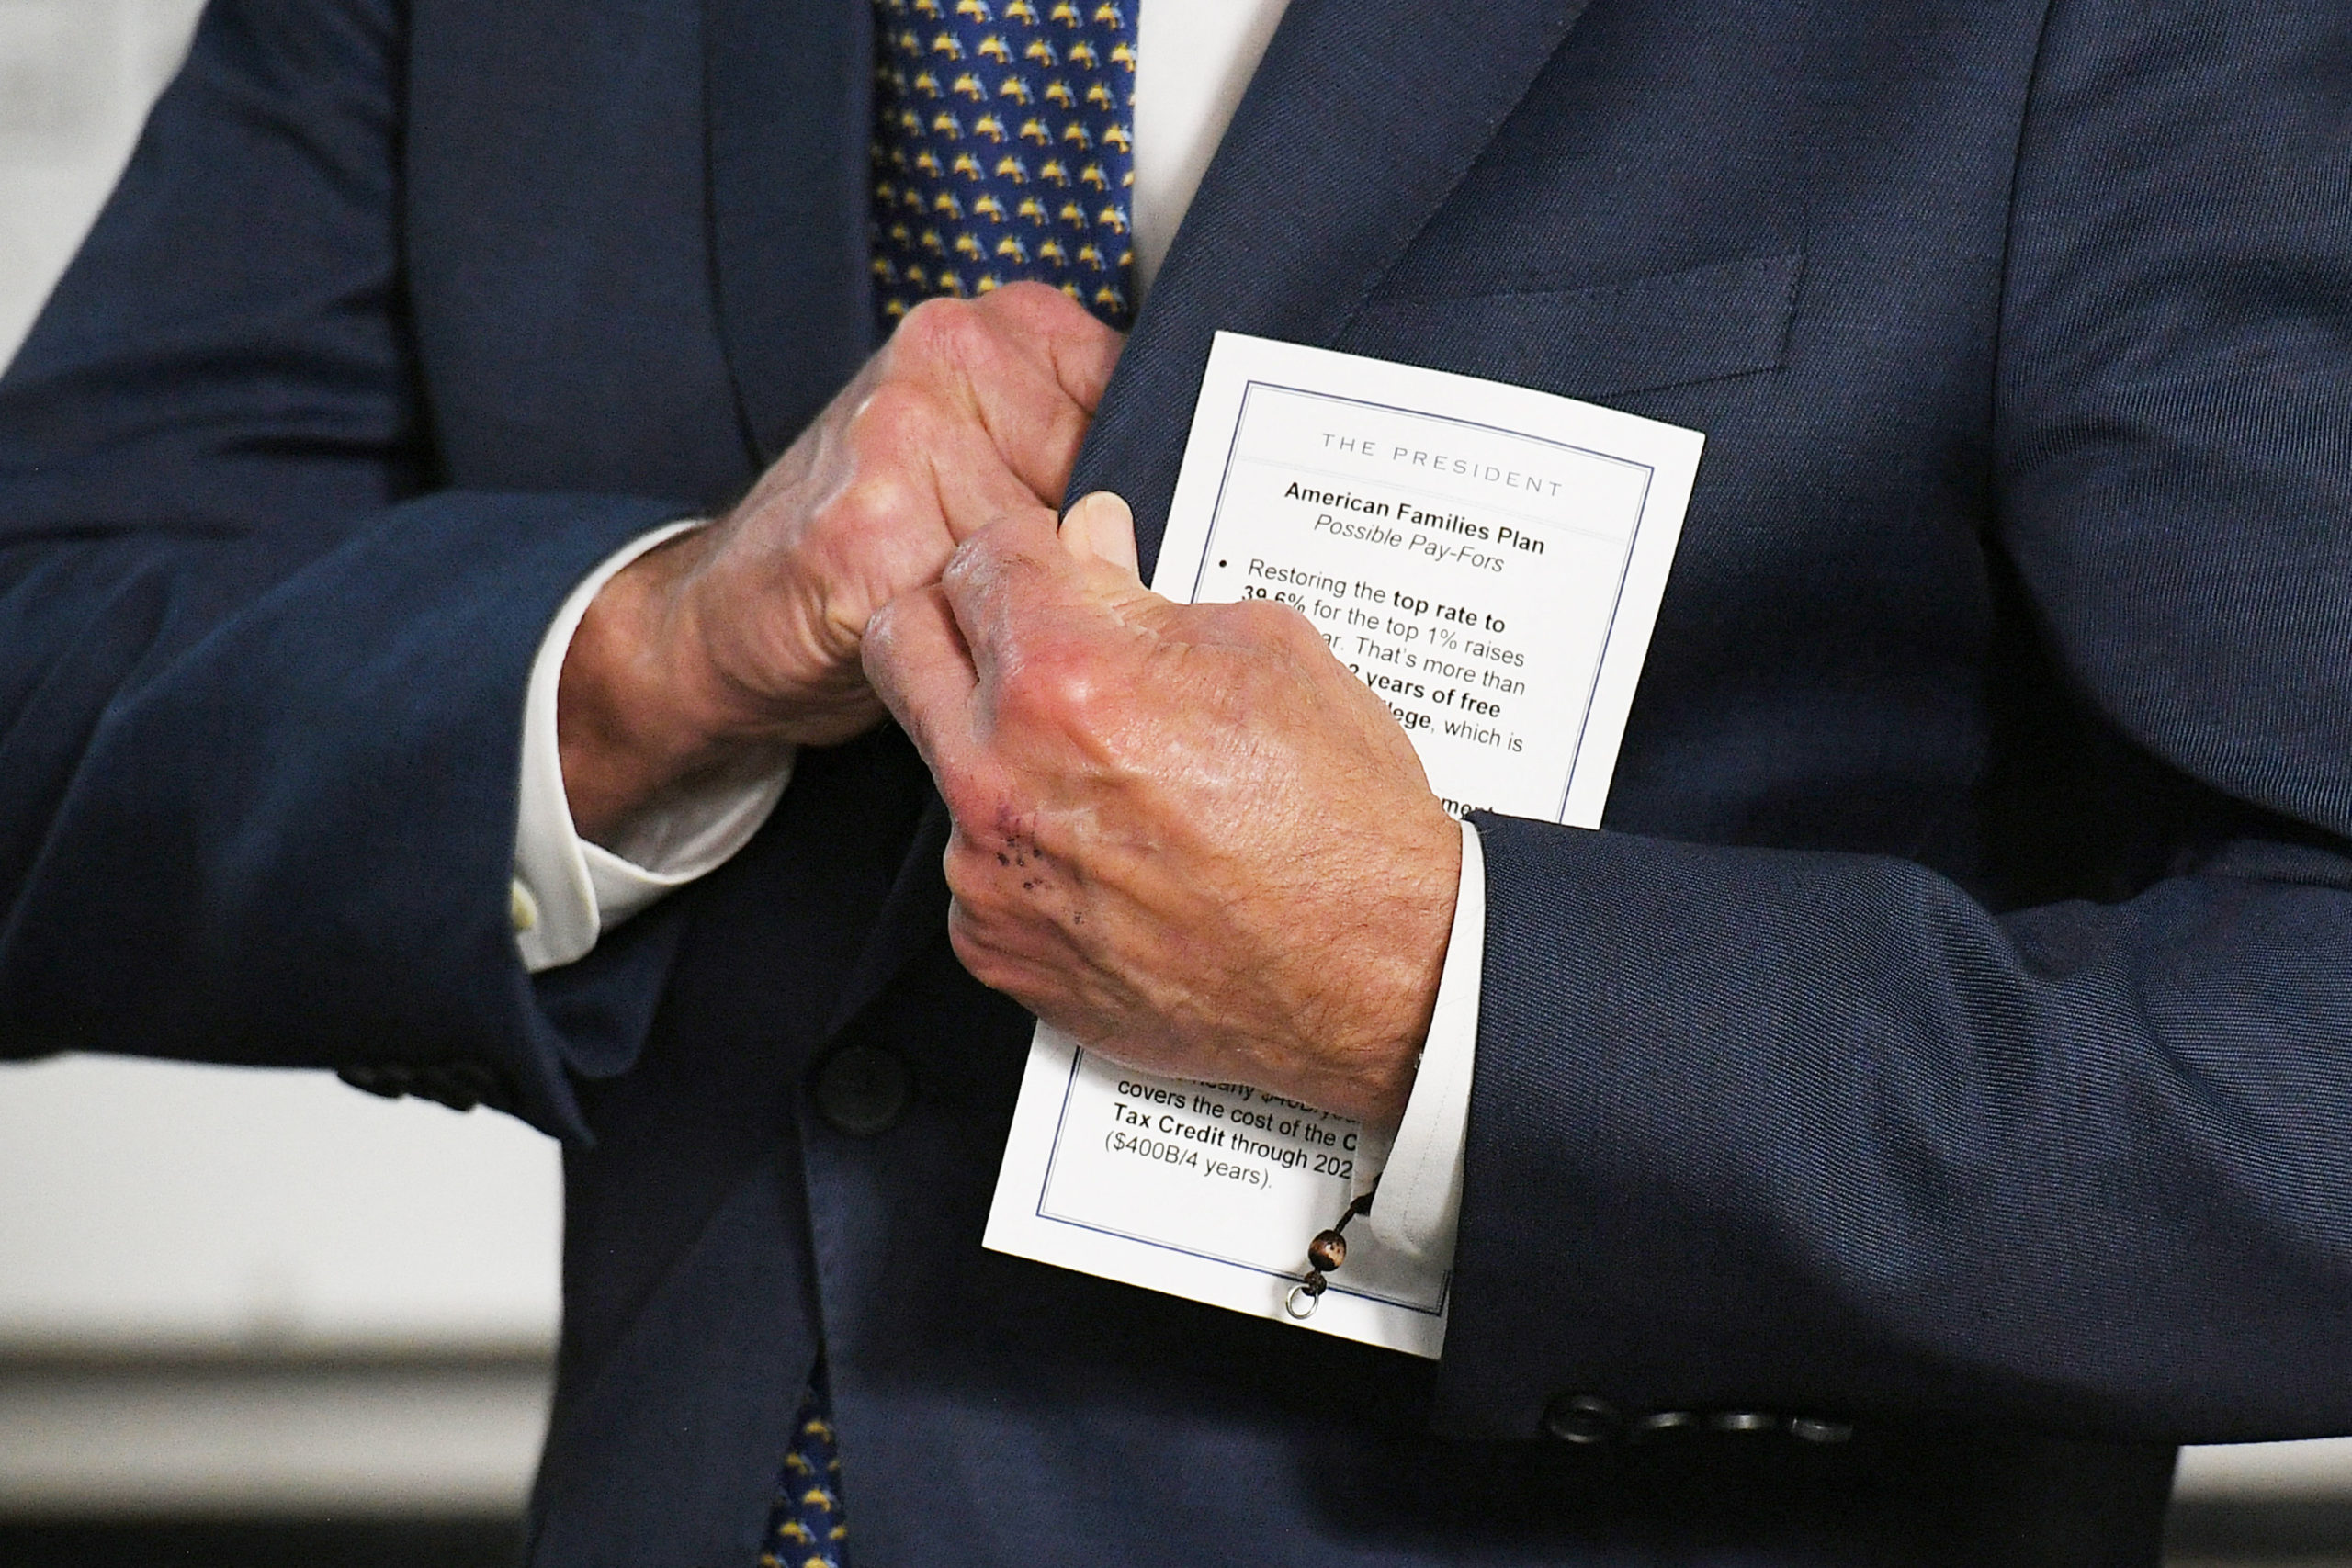 President Joe Biden holds a note card about the American Families plan while being introduced on May 3. (Mandel Ngan/AFP via Getty Images)